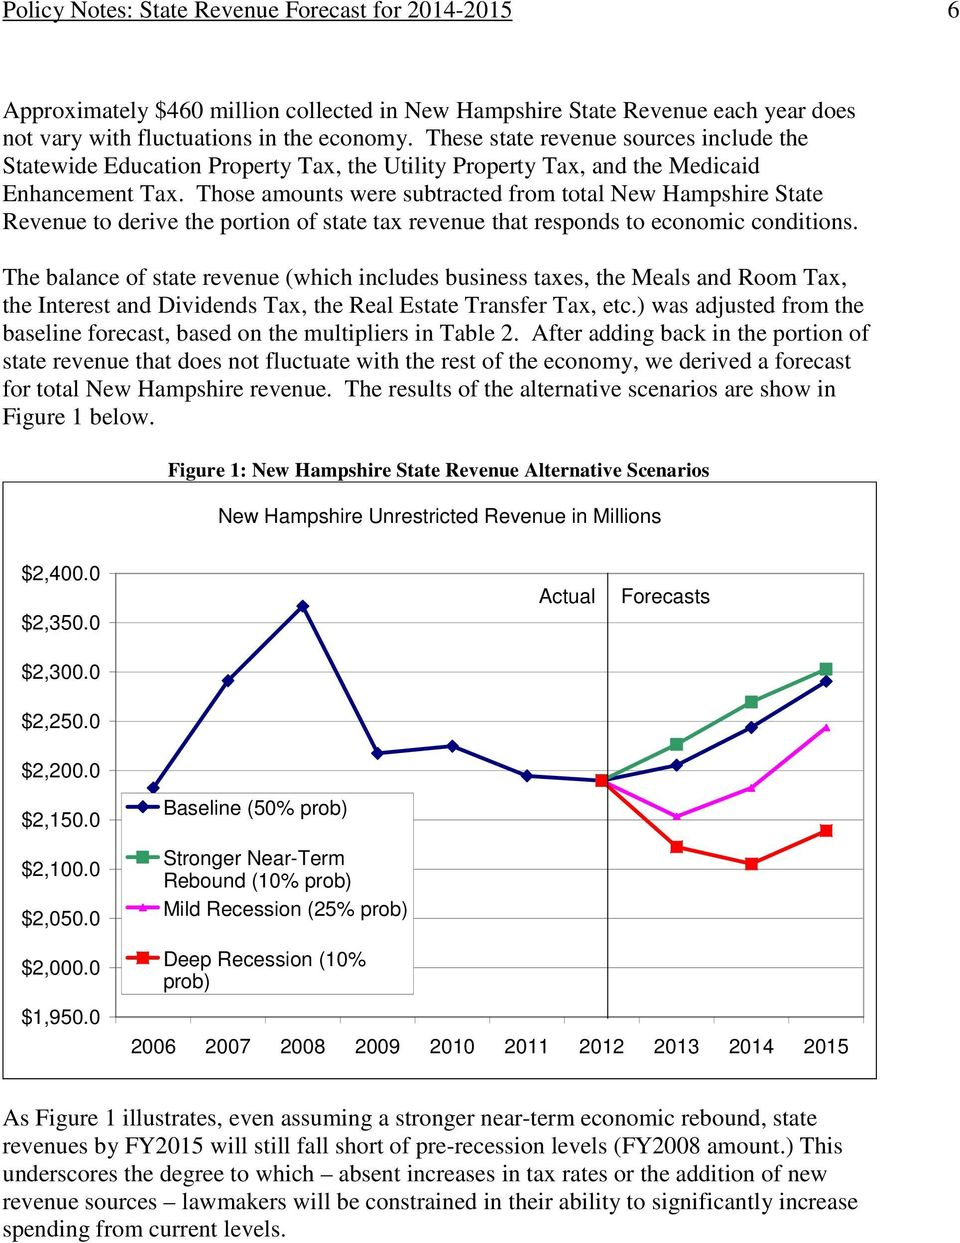 Those amounts were subtracted from total New Hampshire State Revenue to derive the portion of state tax revenue that responds to economic conditions.